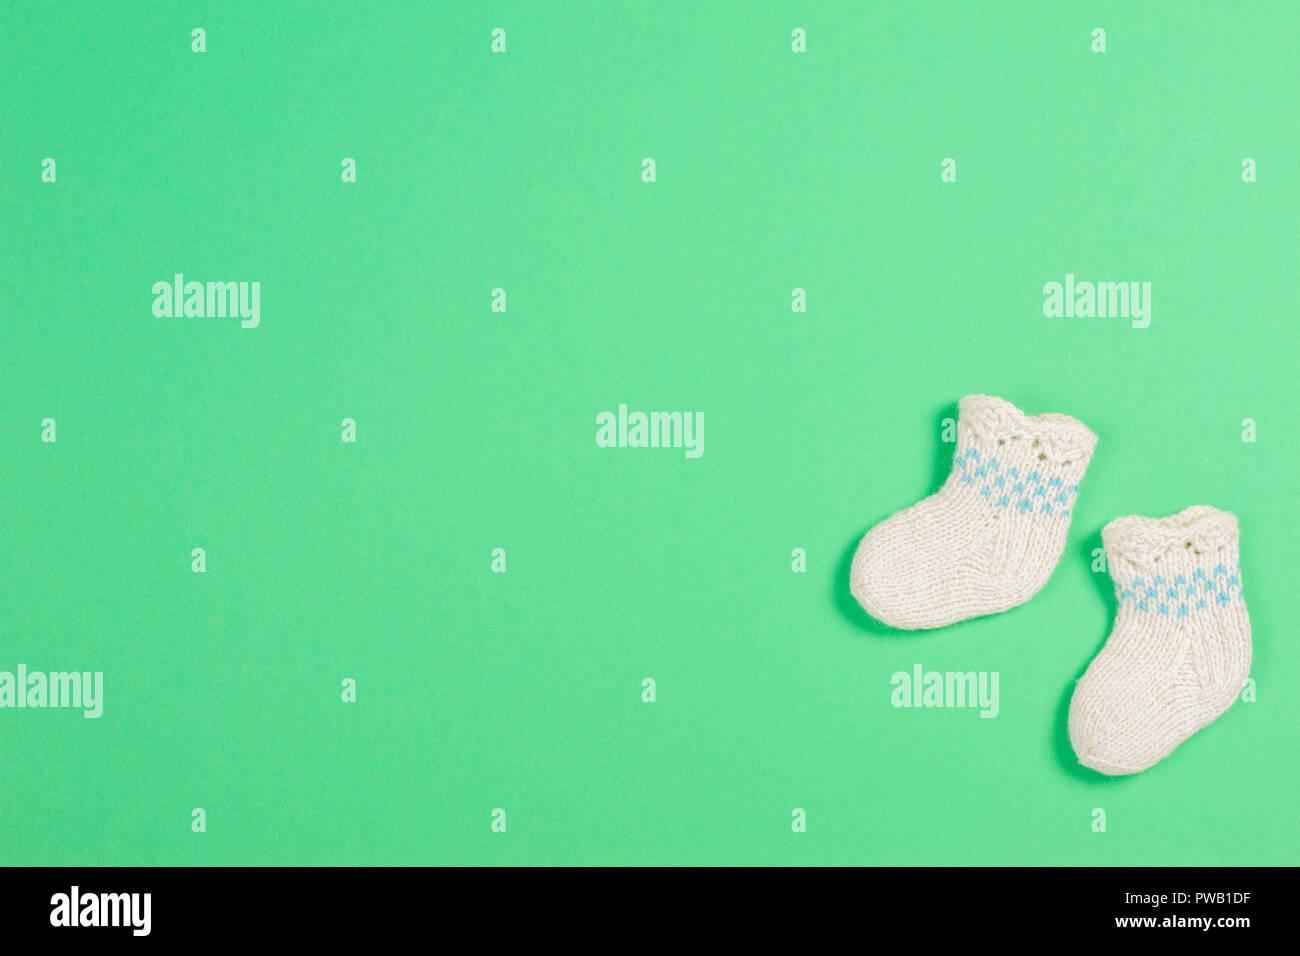 Knitted baby wool socks on green background - Stock Image